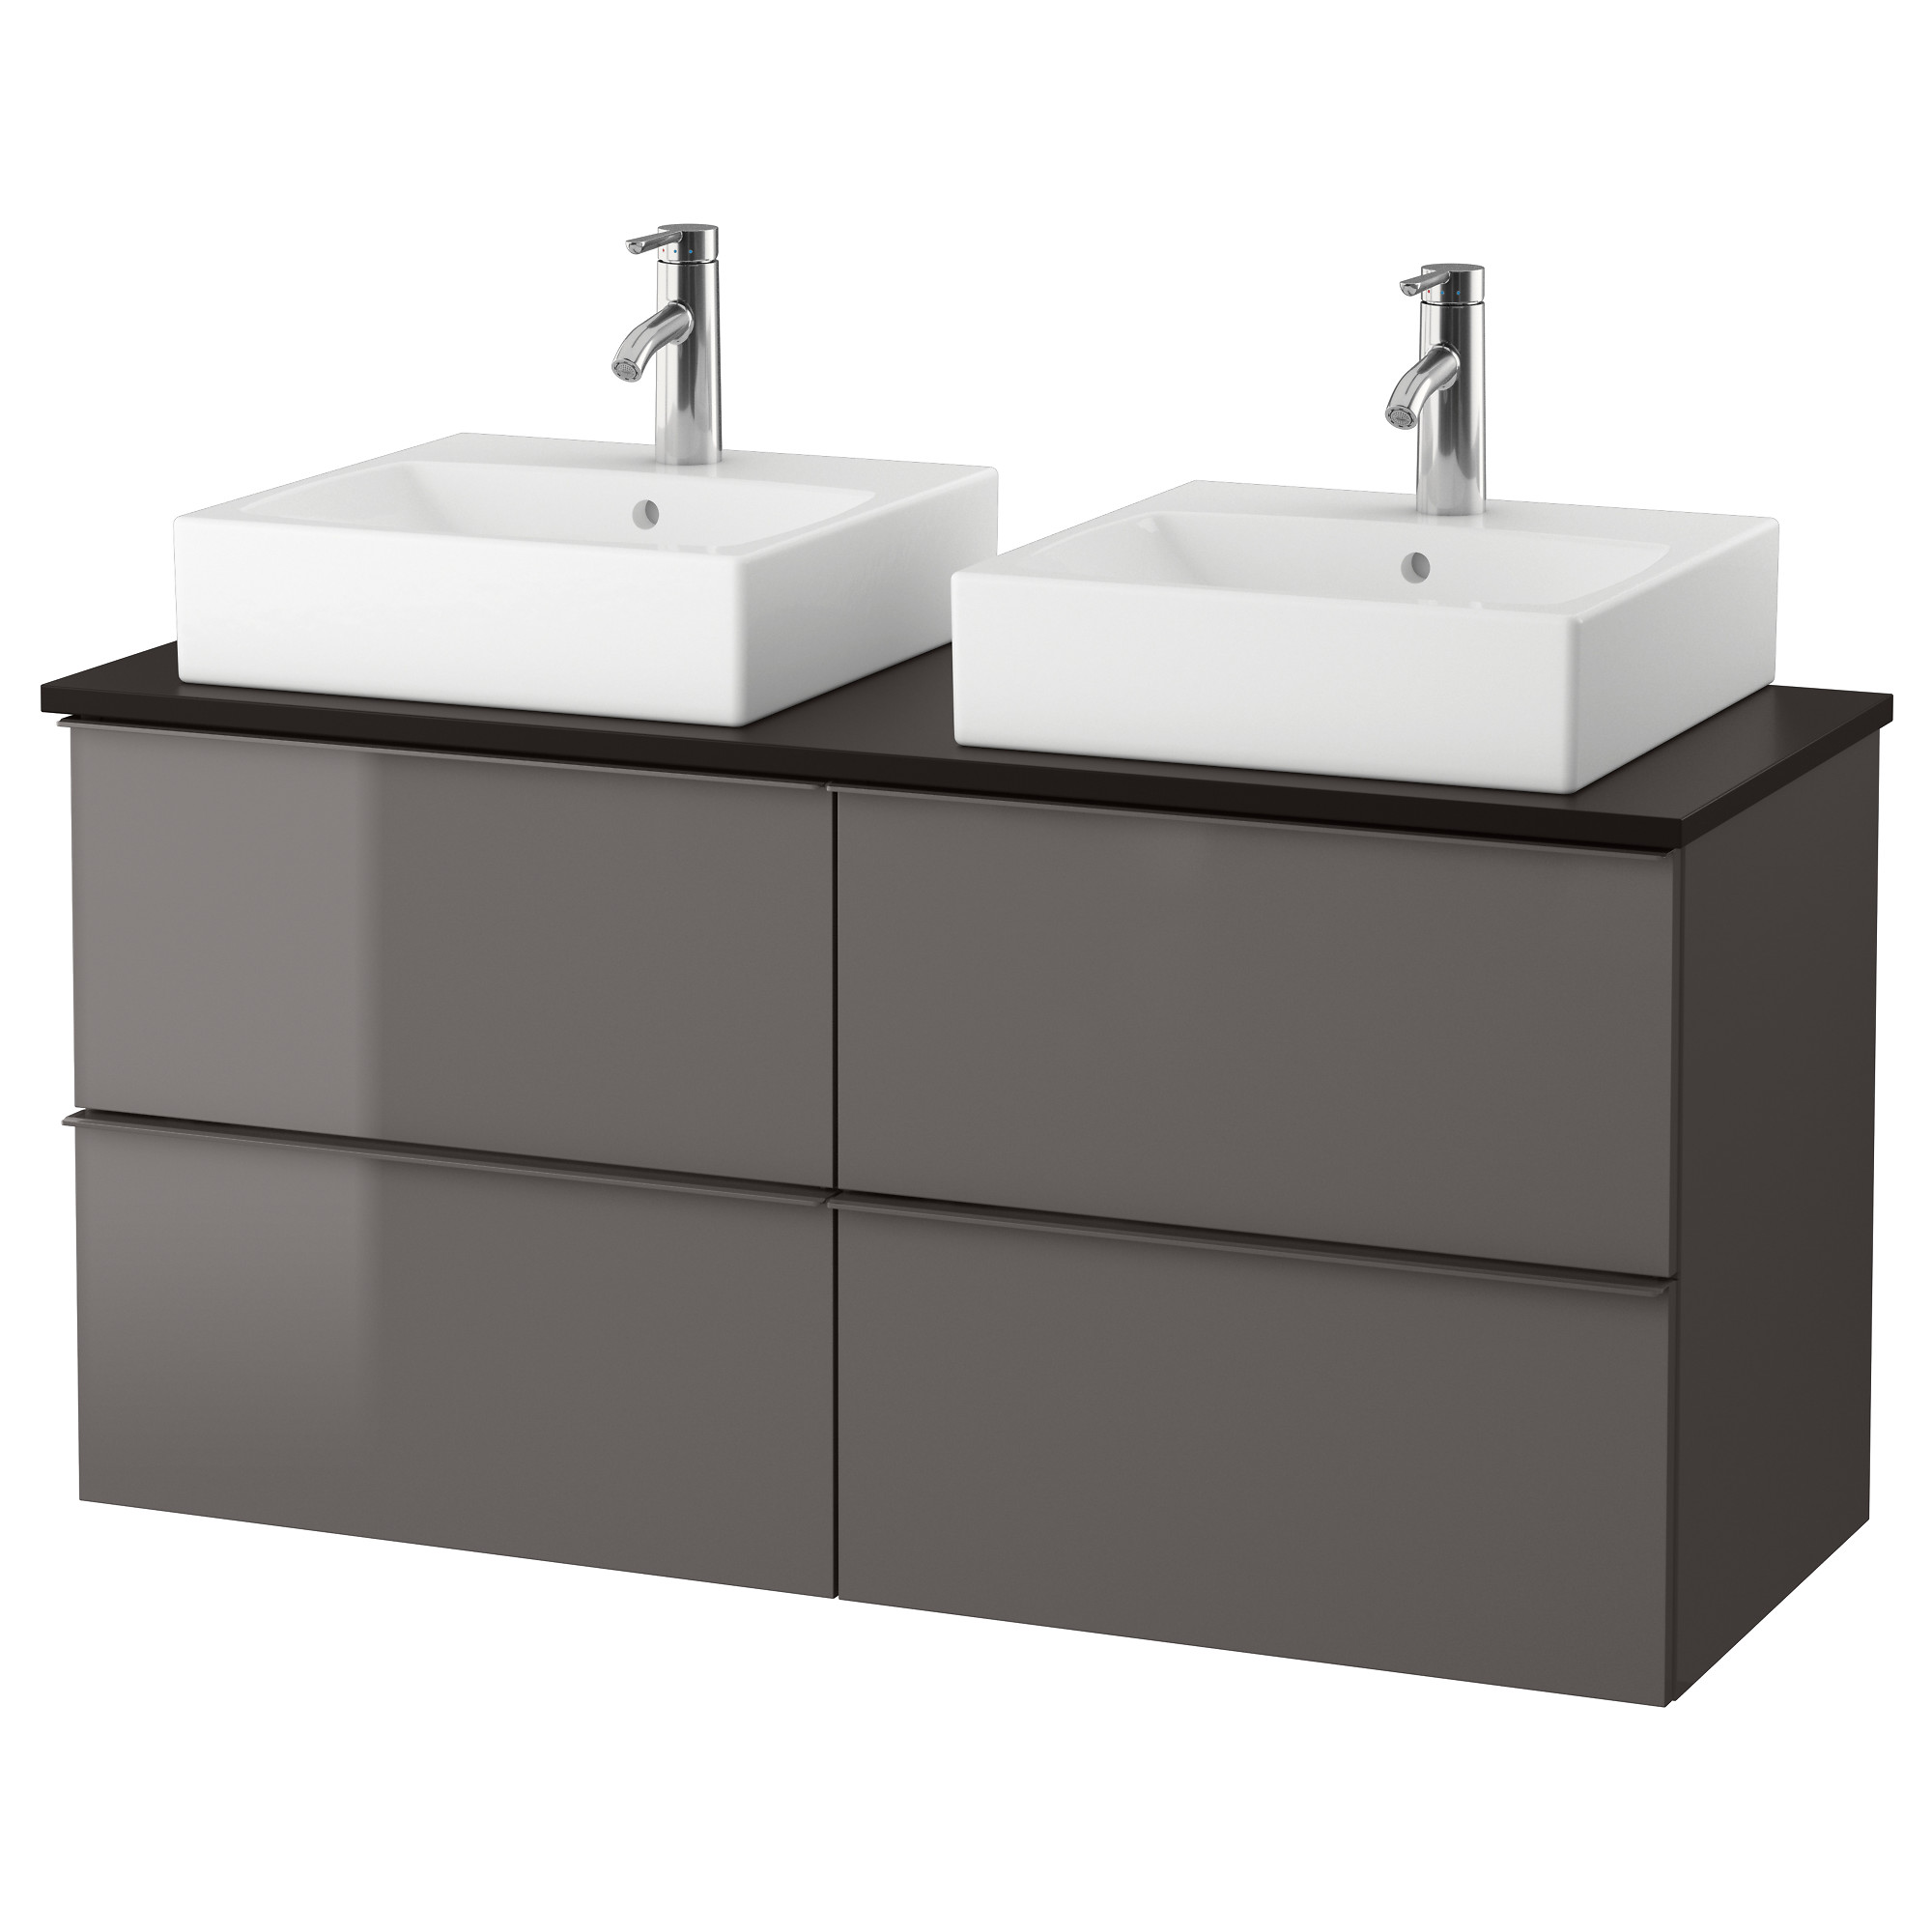 Sink and cabinet for bathroom weifeng furniture for Sink furniture cabinet